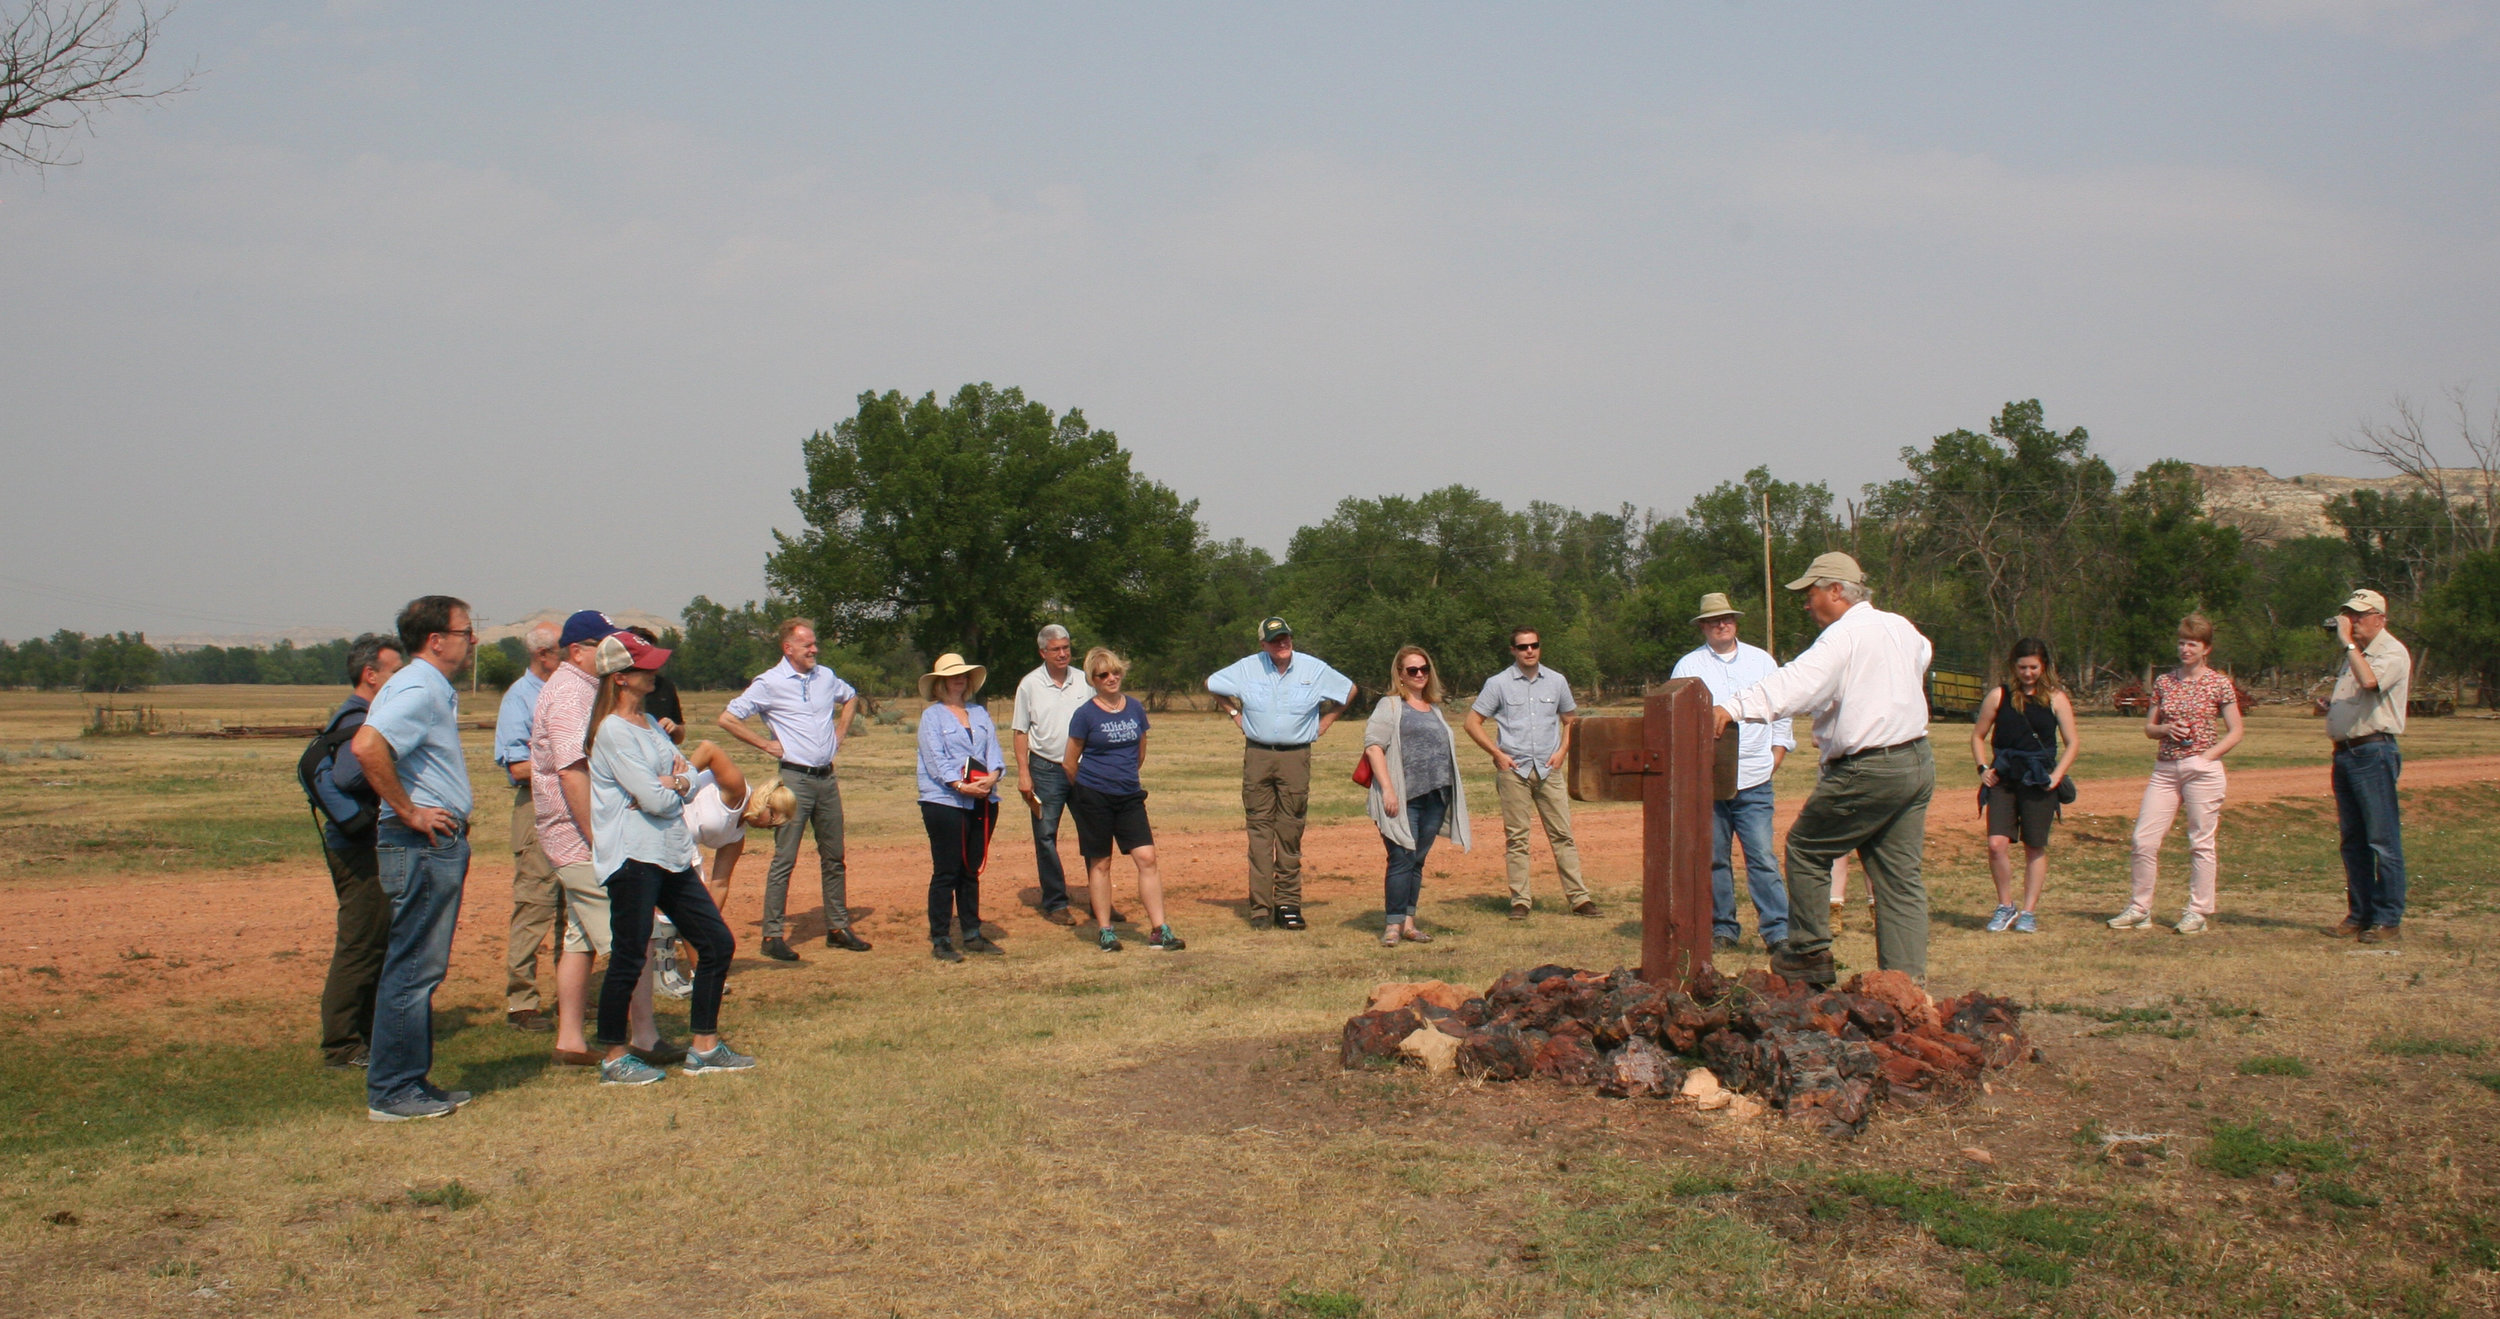 TRPLF staff and consultants visited the site of Theodore Roosevelt's first cabin in the badlands of Dakota Territory - the Maltese Cross Cabin at Chimney Butte Ranch.